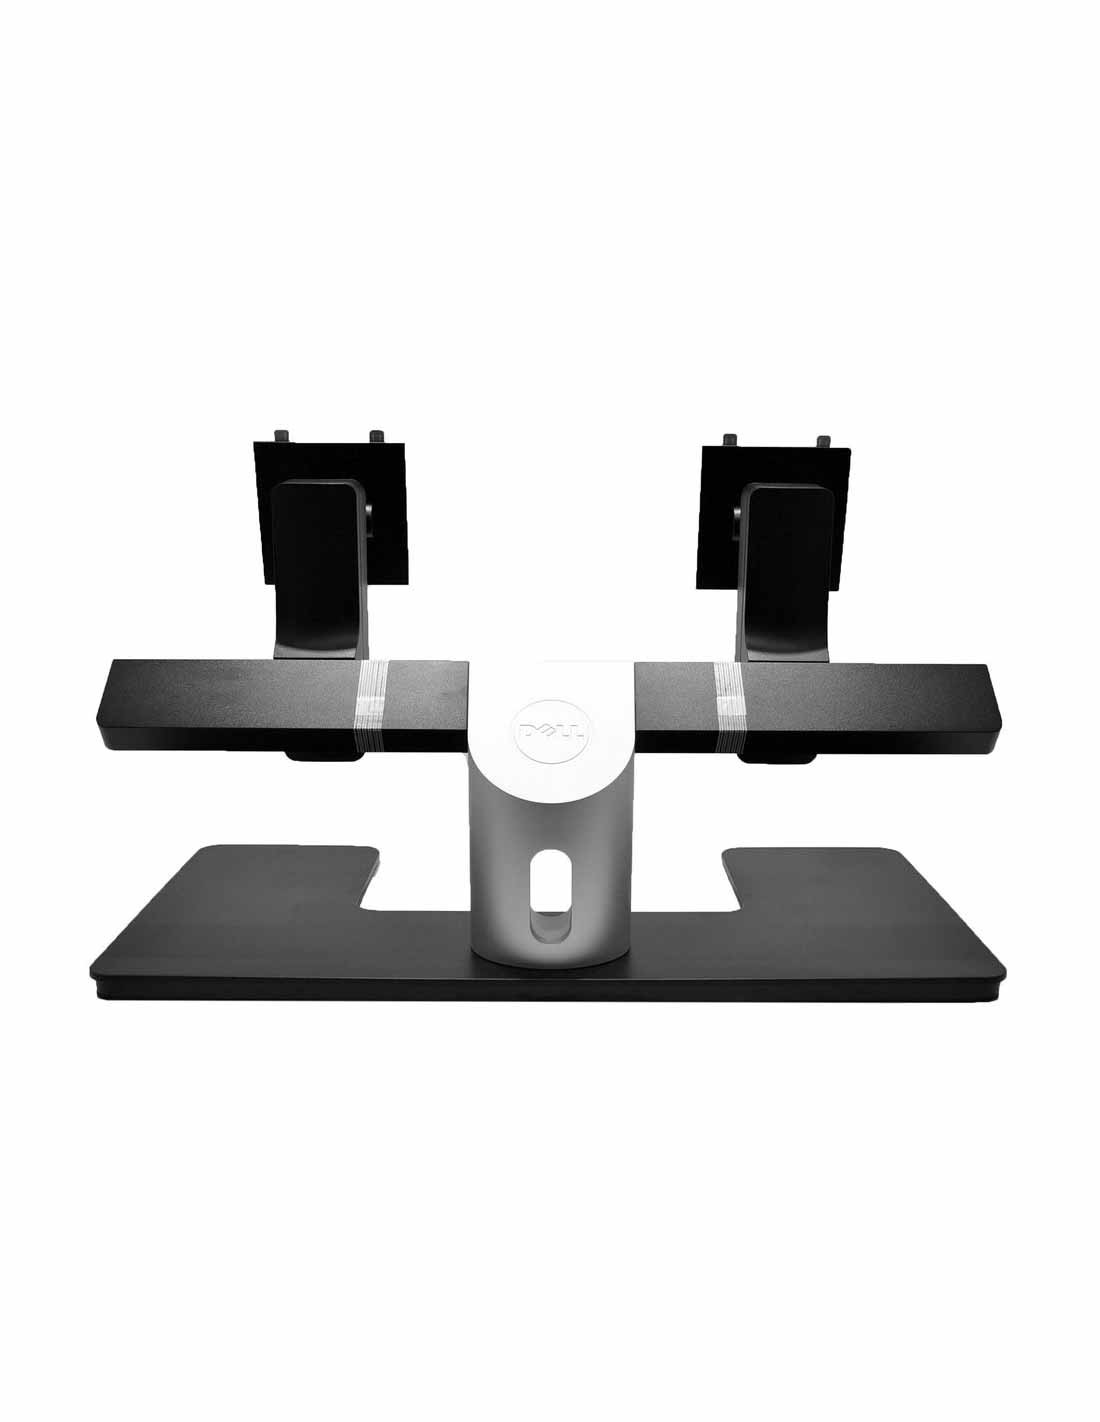 Dell Dual Monitor Stand at the cheapest price and fast free delivery in Dubai, UAE